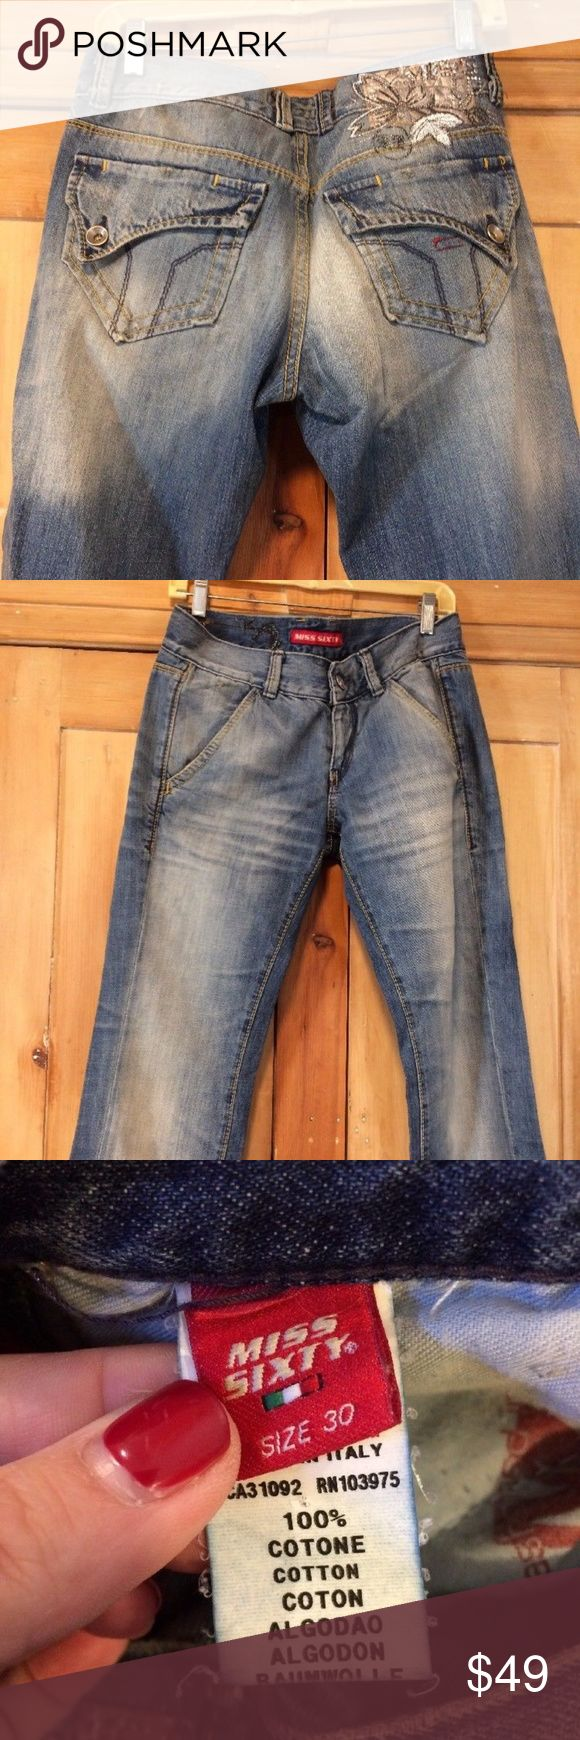 """Retro Jeans Miss Sixty 30 x 34"""" Made in Italy Ladies Jeans Miss Sixty Size 30 Inseam 34"""" Made in Italy 8.5"""" rise on the lower side of classic (9) Miss Sixty Jeans"""